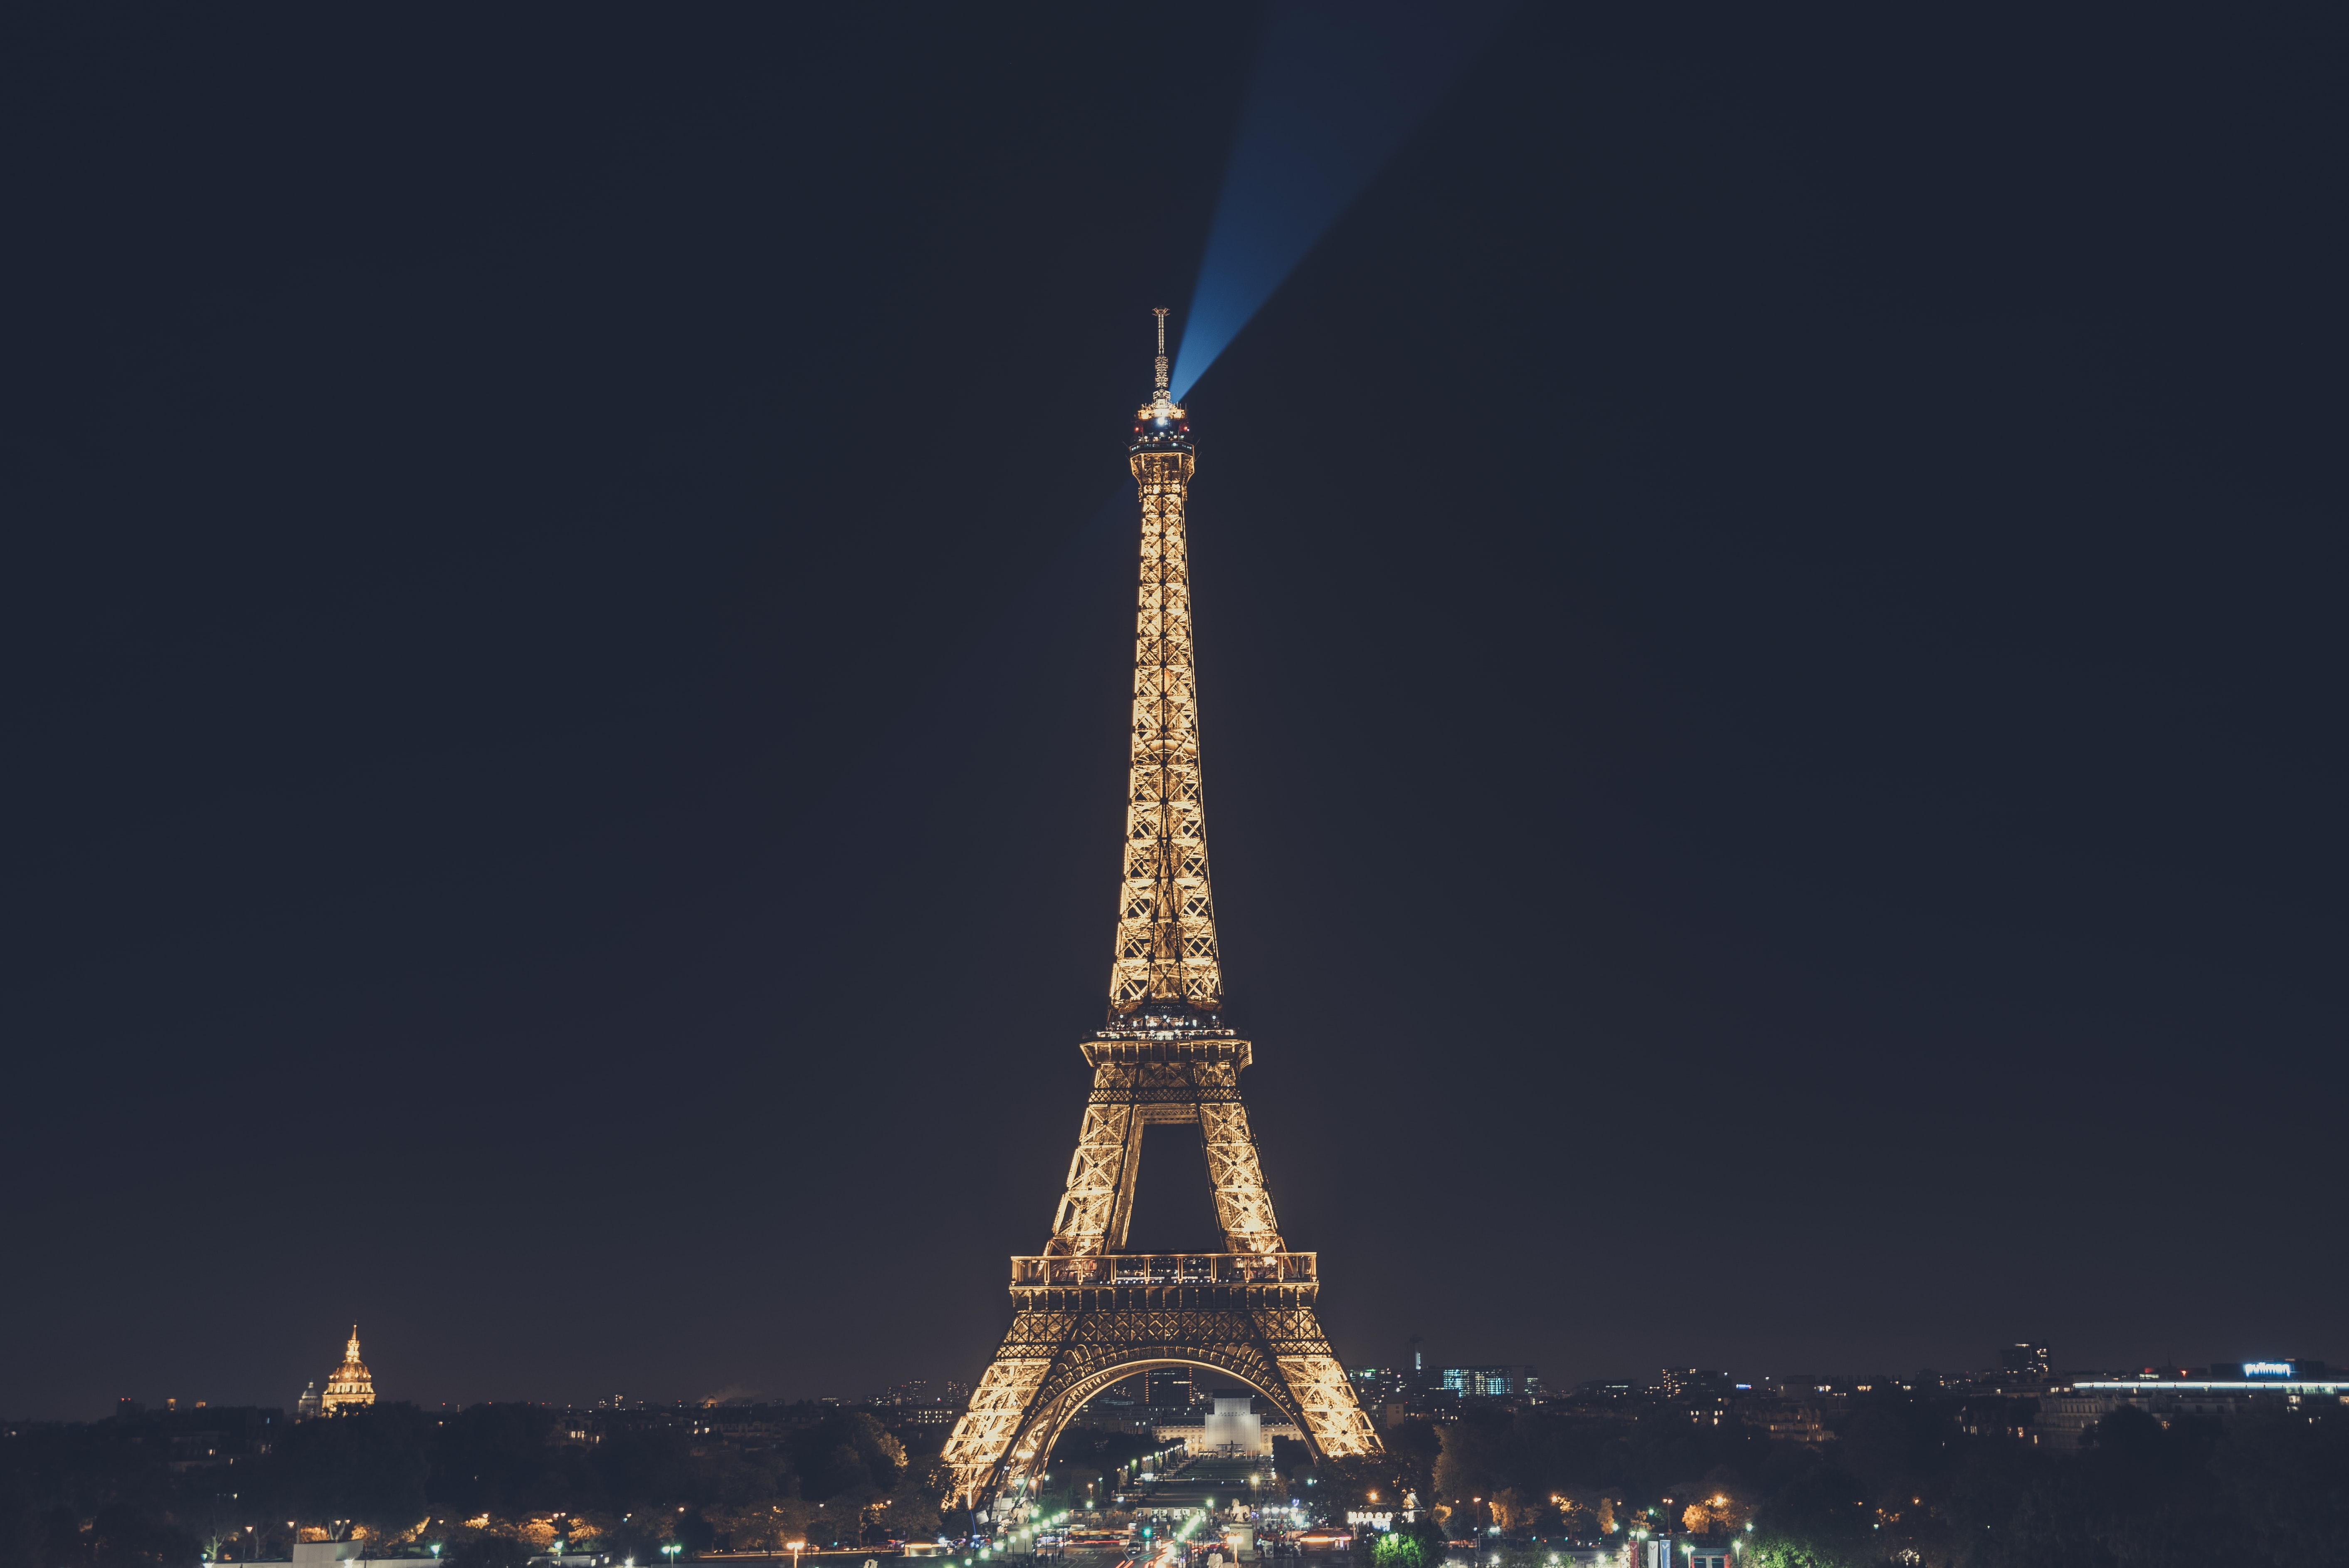 The landmark Eiffel Tower and its architecture illuminated at night